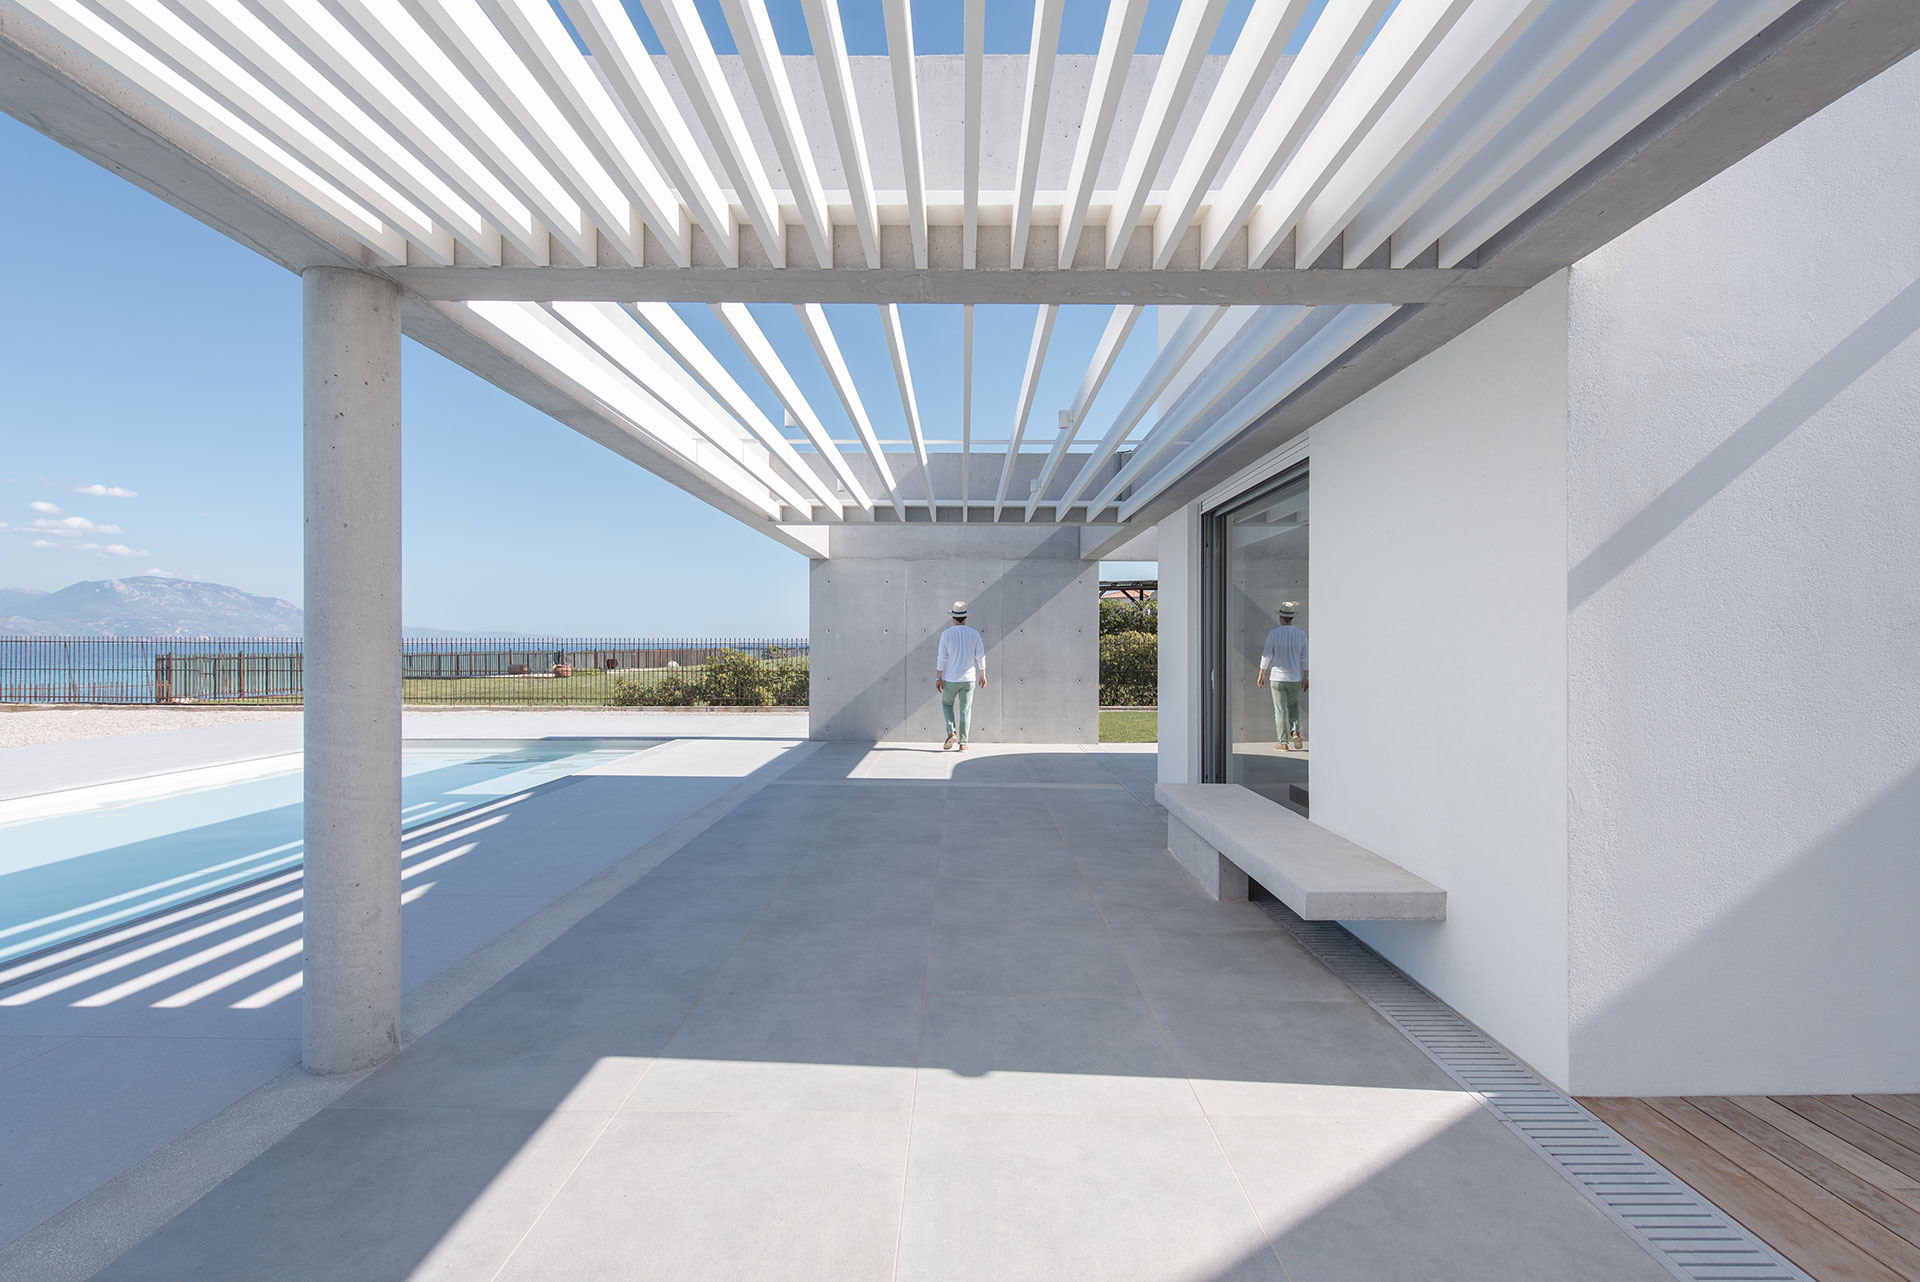 Beach House Neratza by R.C.TECH. Photo by Athina Souli.